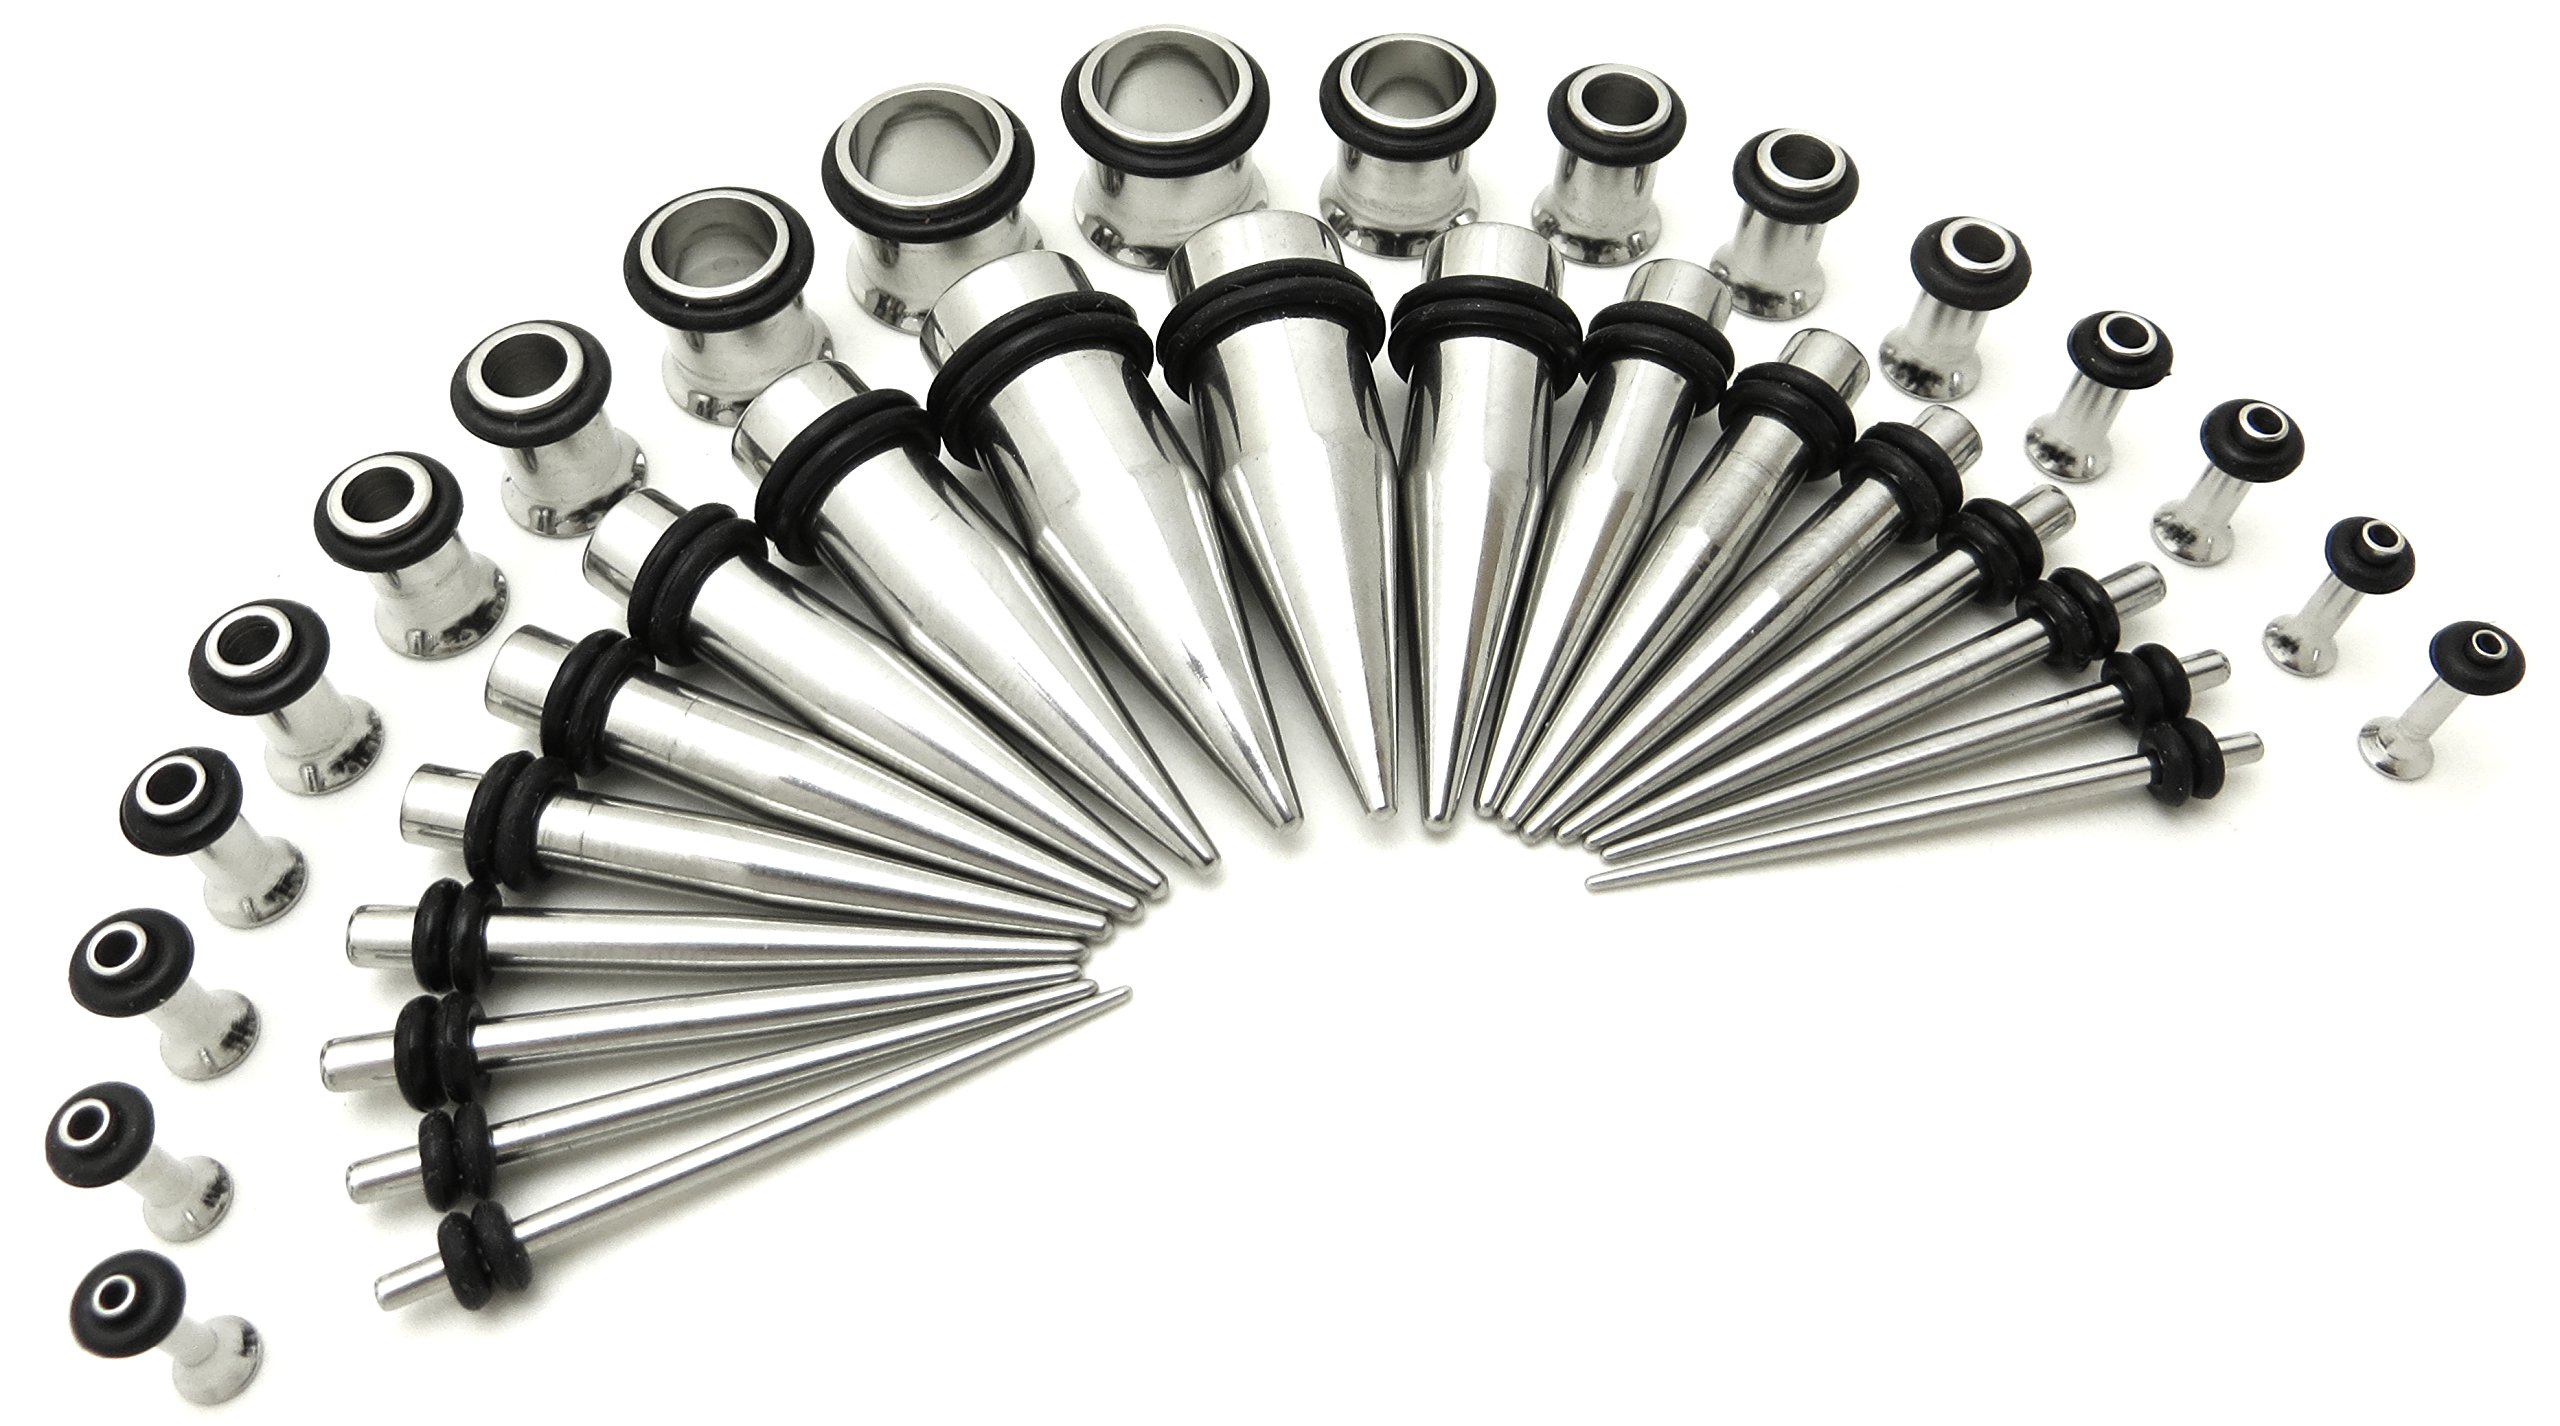 Stainless Steel Ear Stretching Taper and Tunnel Starter Kit - 36 Piece Set 14G to 00G Gauge